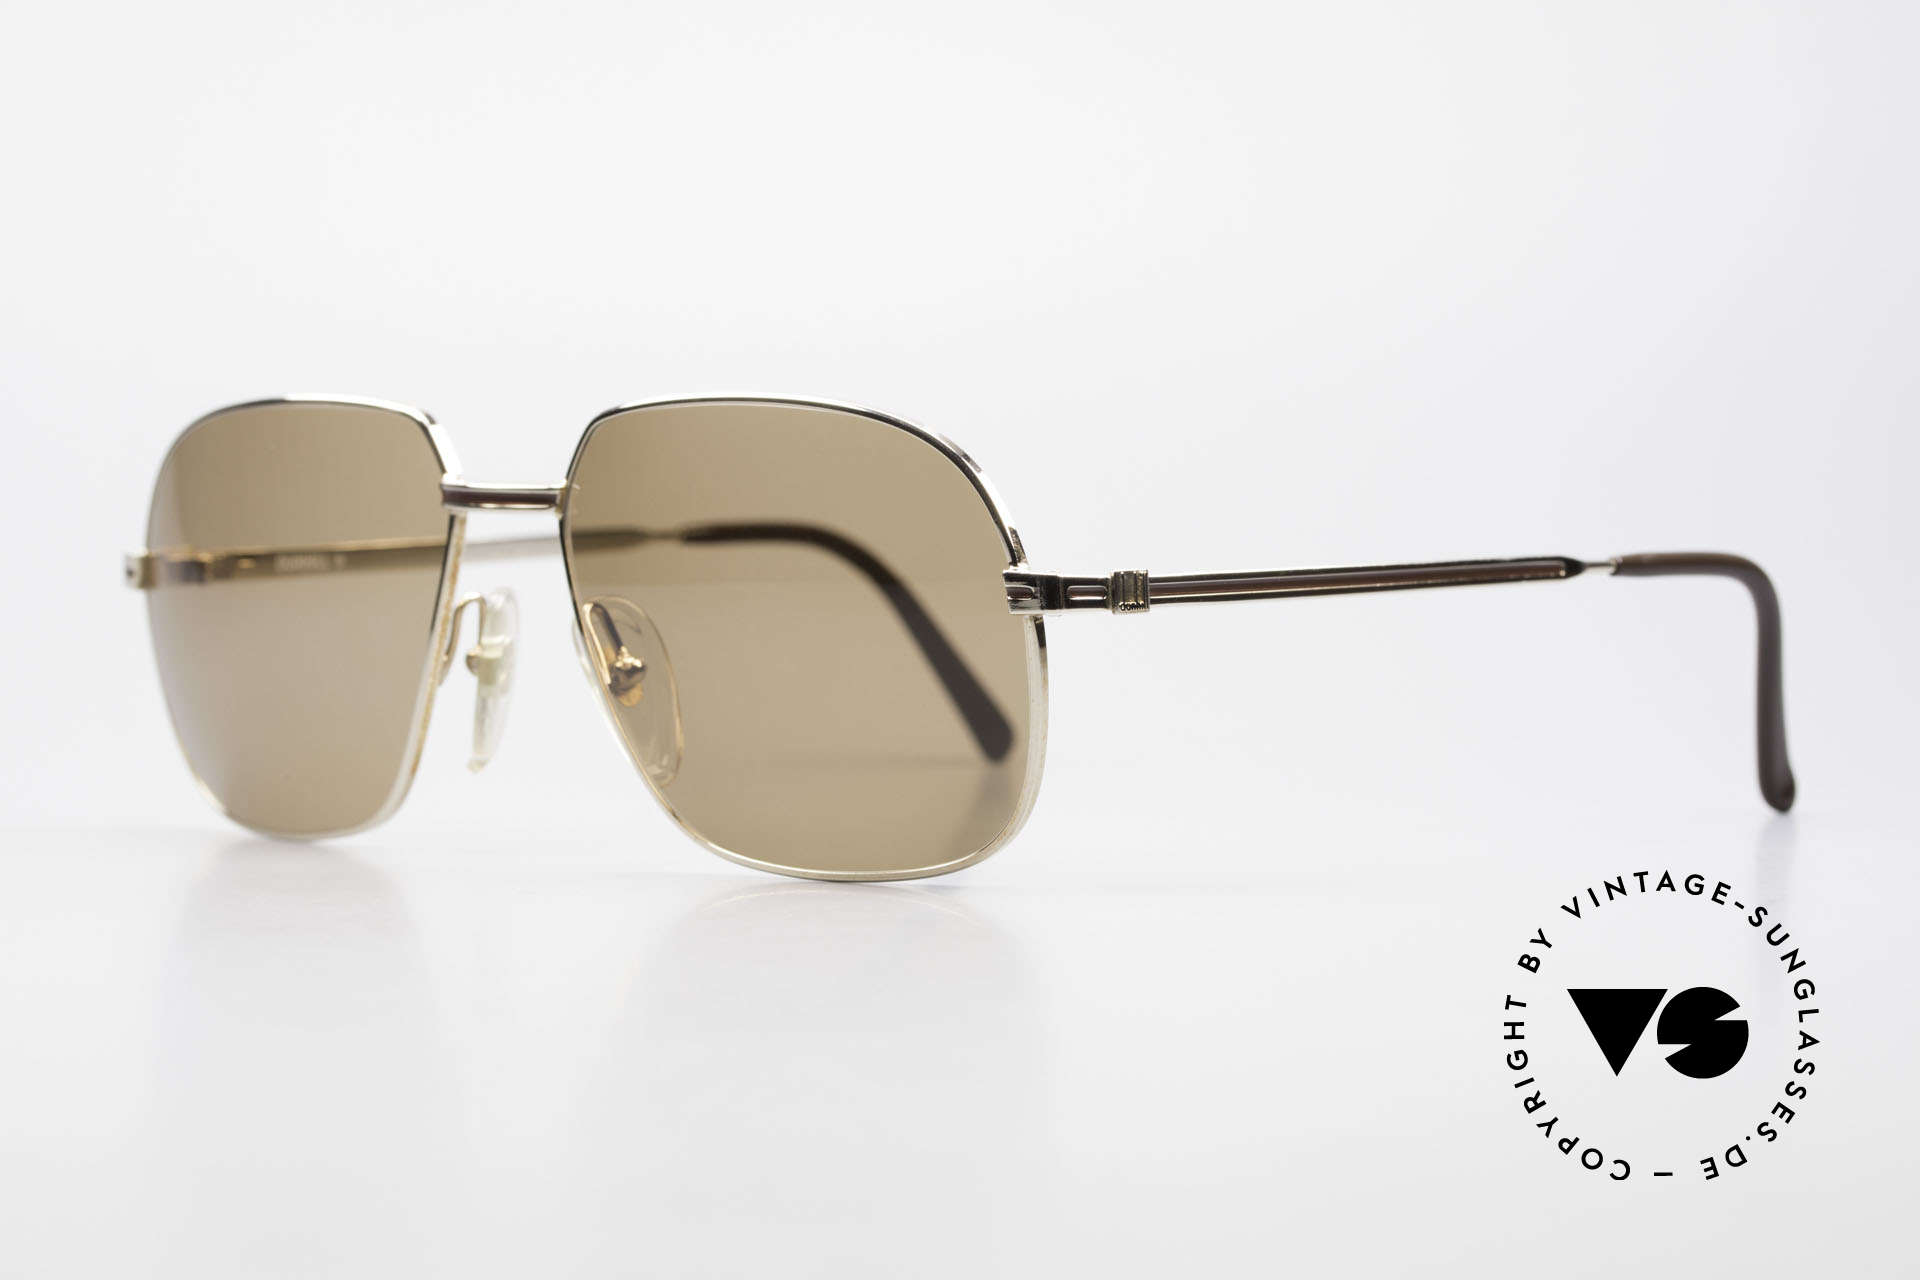 Dunhill 6123 Gold Plated Gentlemen's Frame, gold-plated frame with auburn inlay; top notch quality, Made for Men